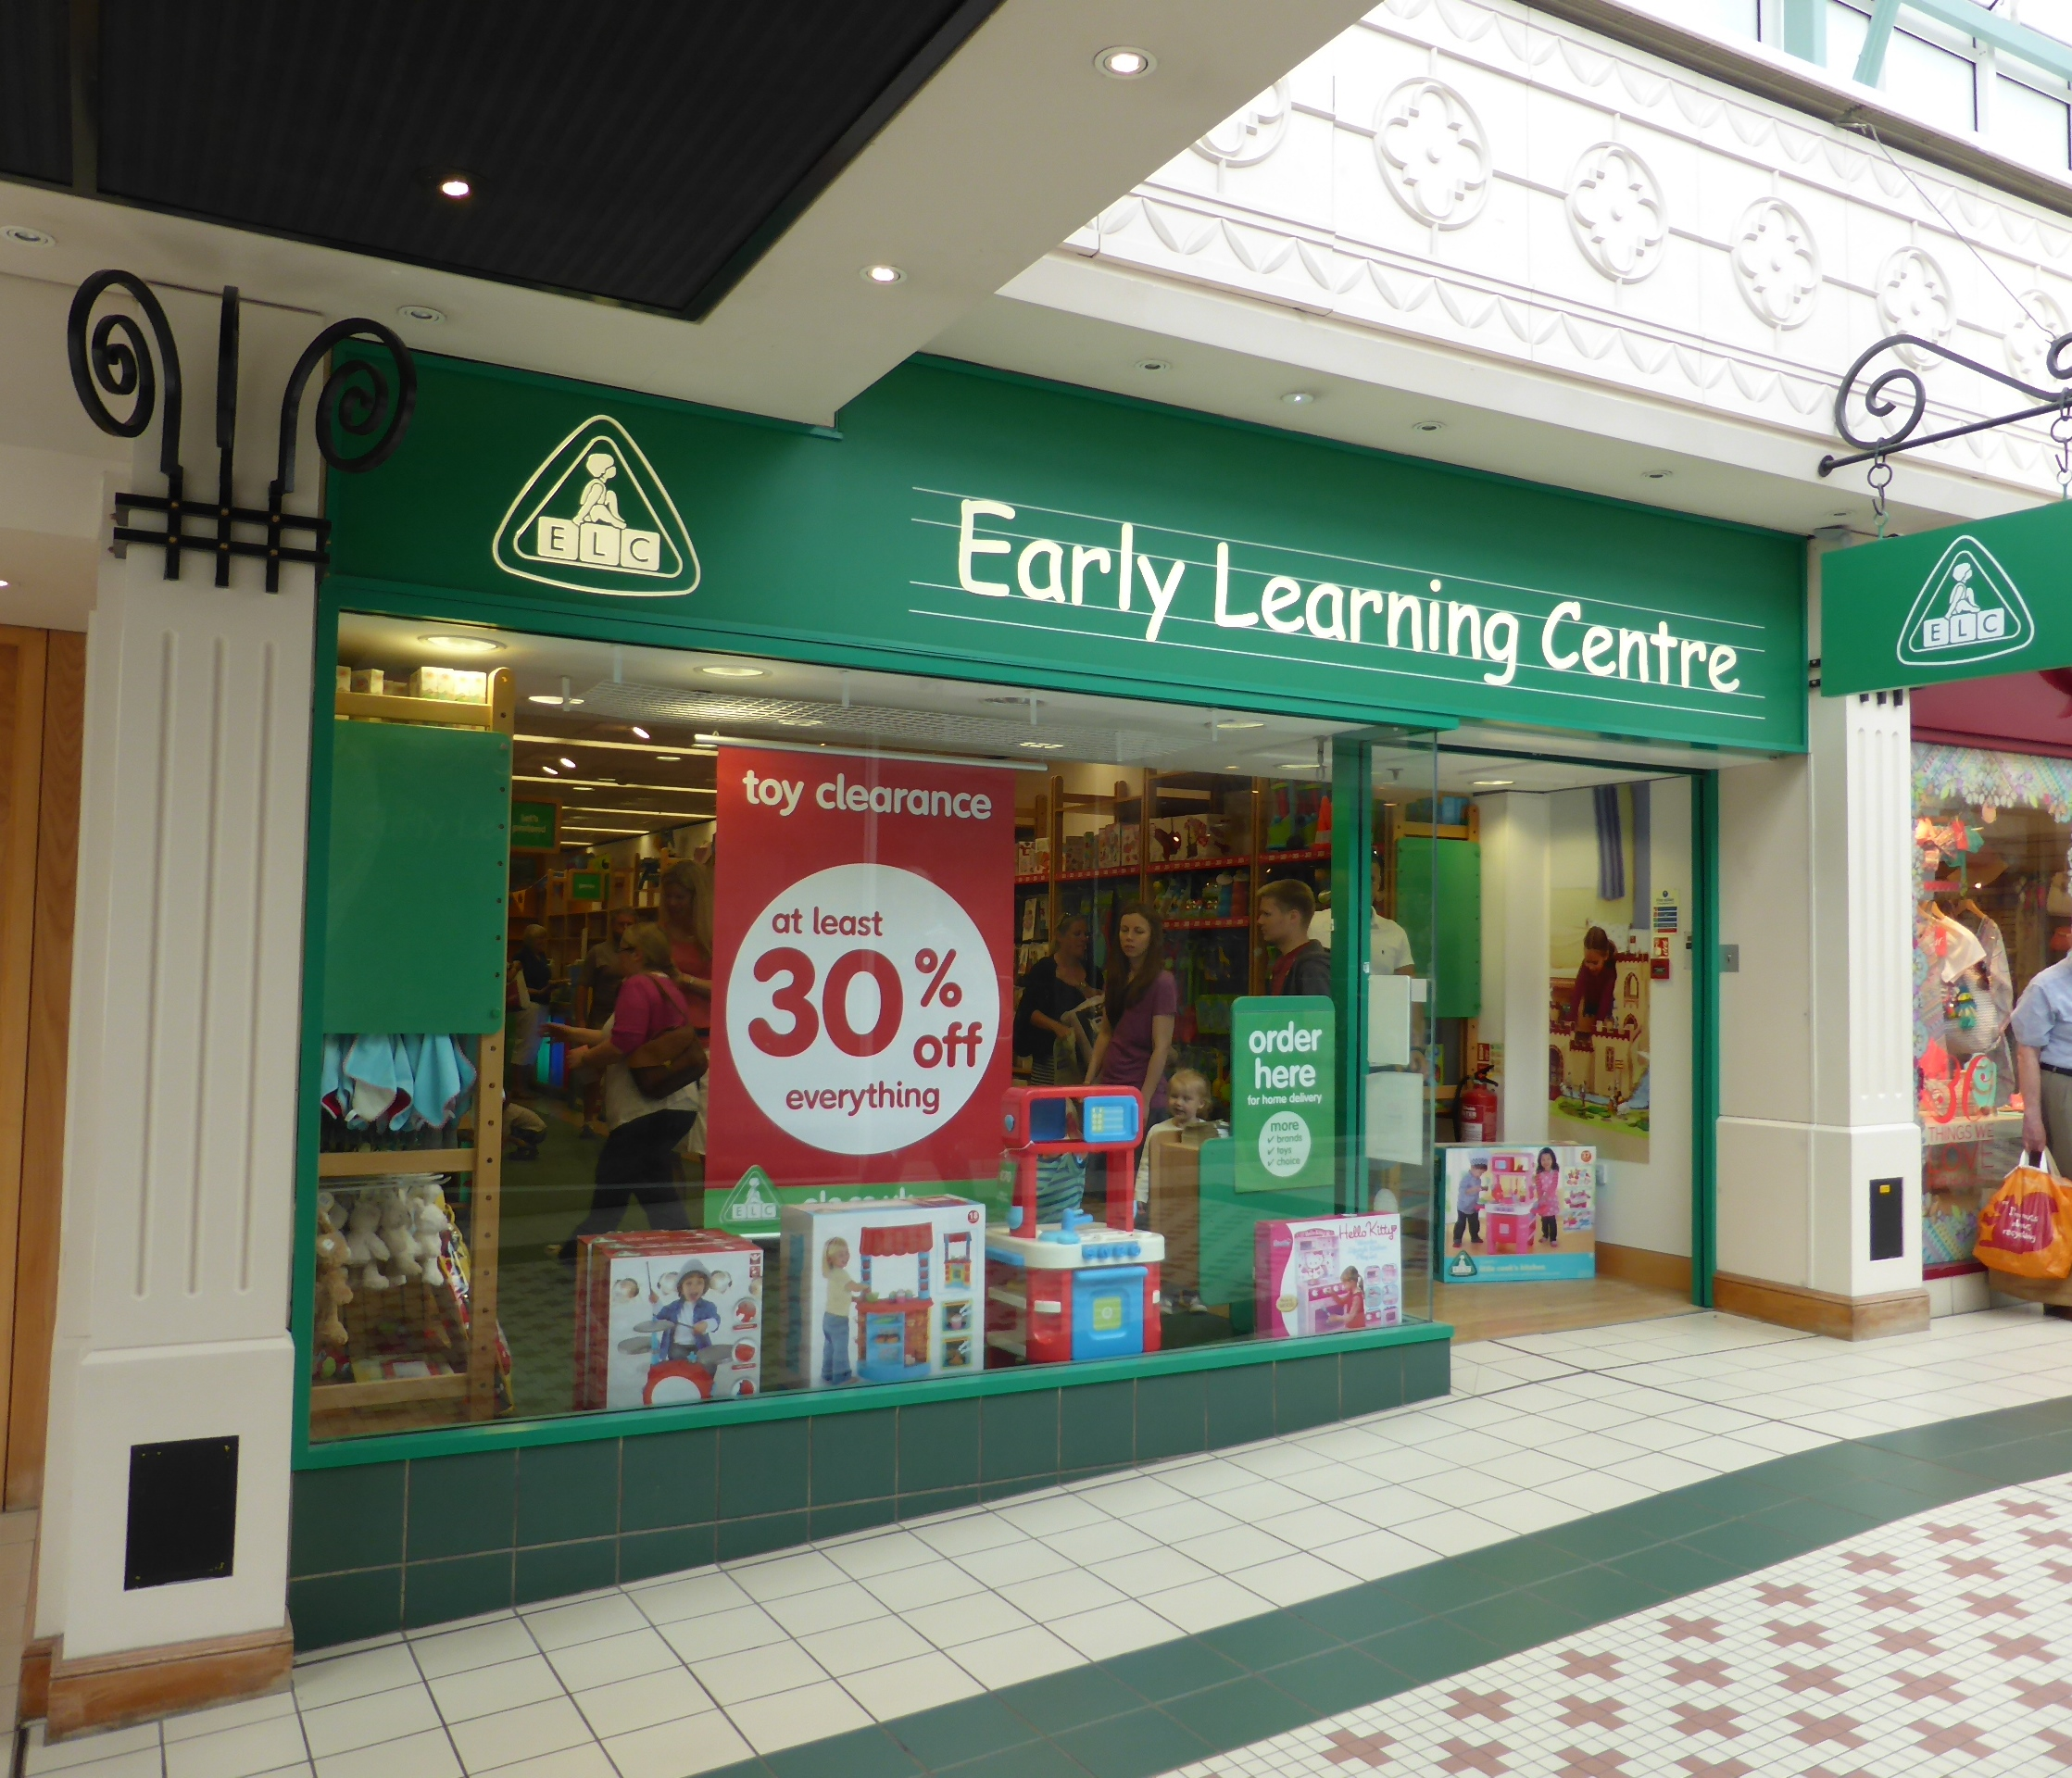 Early Learning: Early Learning Centre – Is It Closing?